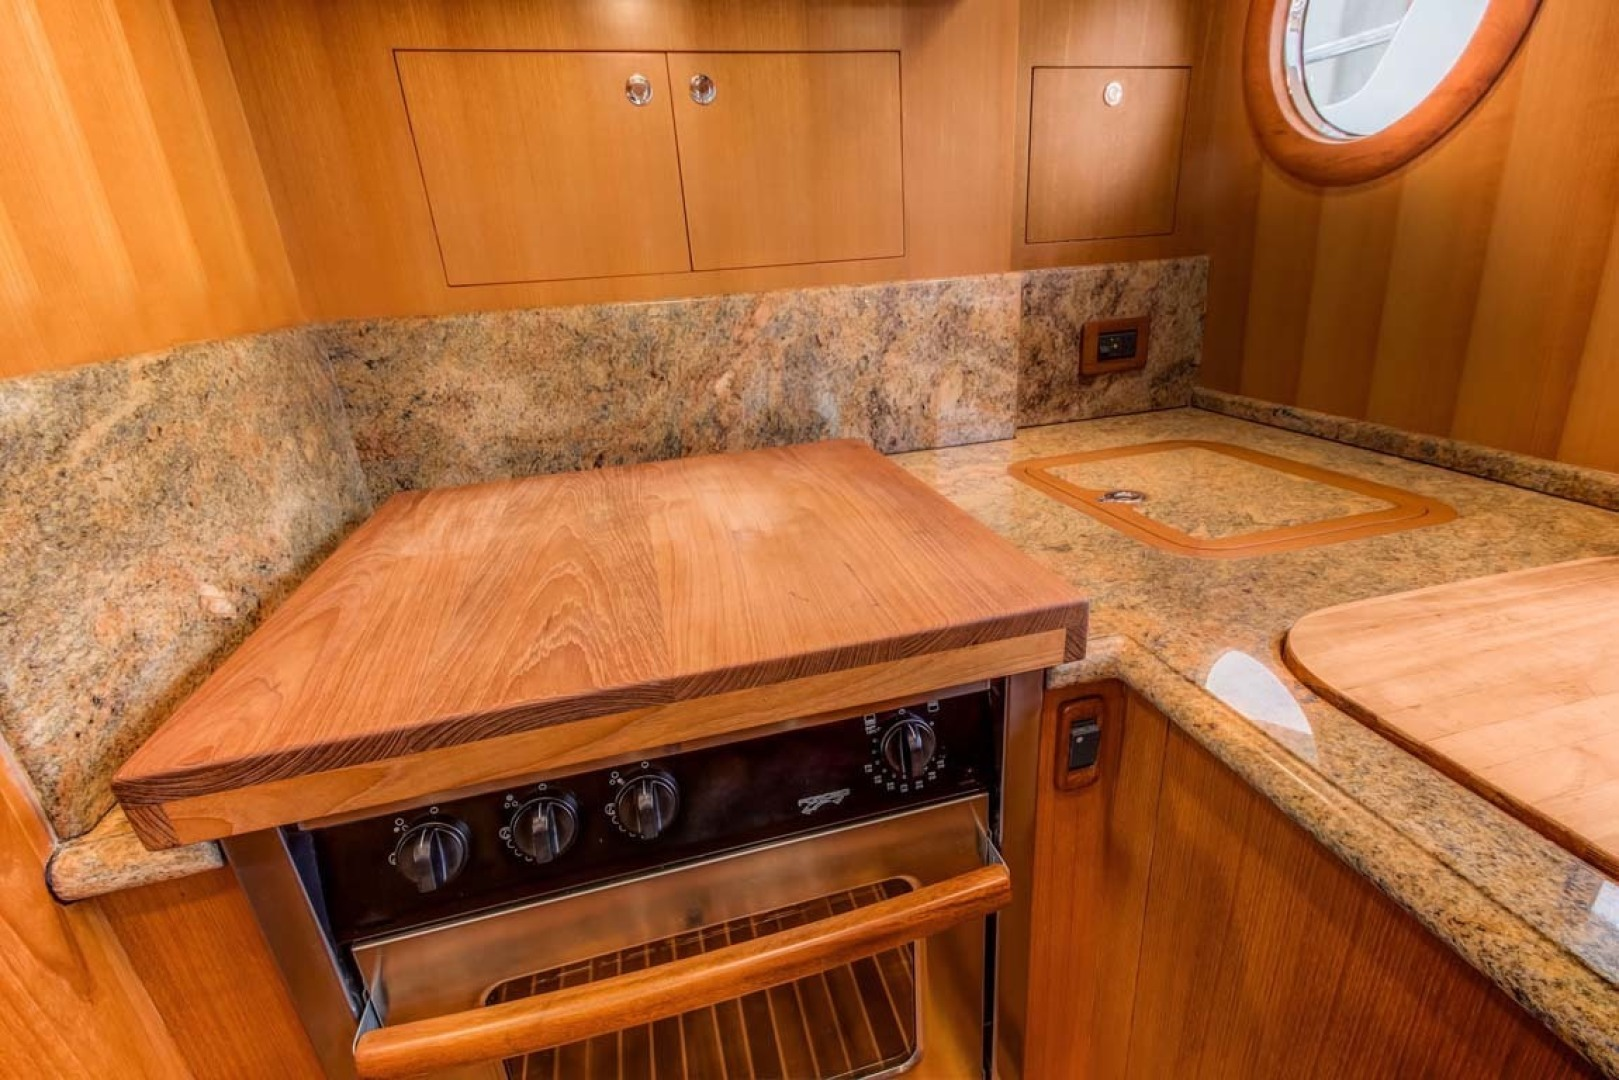 Selene-60 Ocean Trawler 2010-Gypsy Magic Jacksonville-Florida-United States-Galley-1346743 | Thumbnail